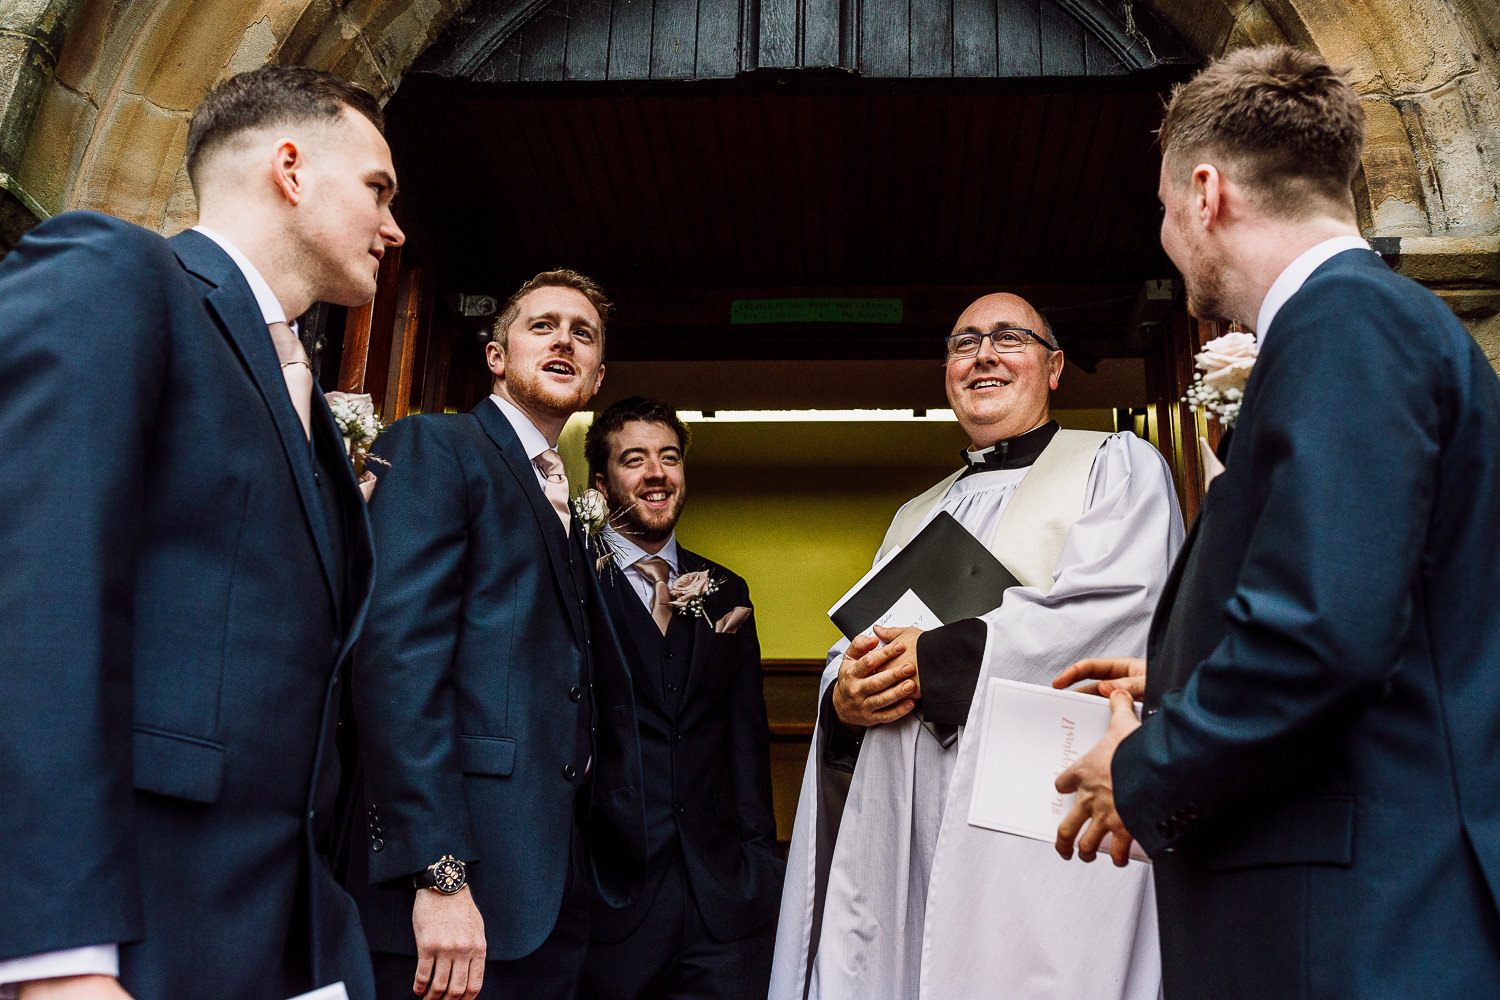 Groomsmen and vicar waiting